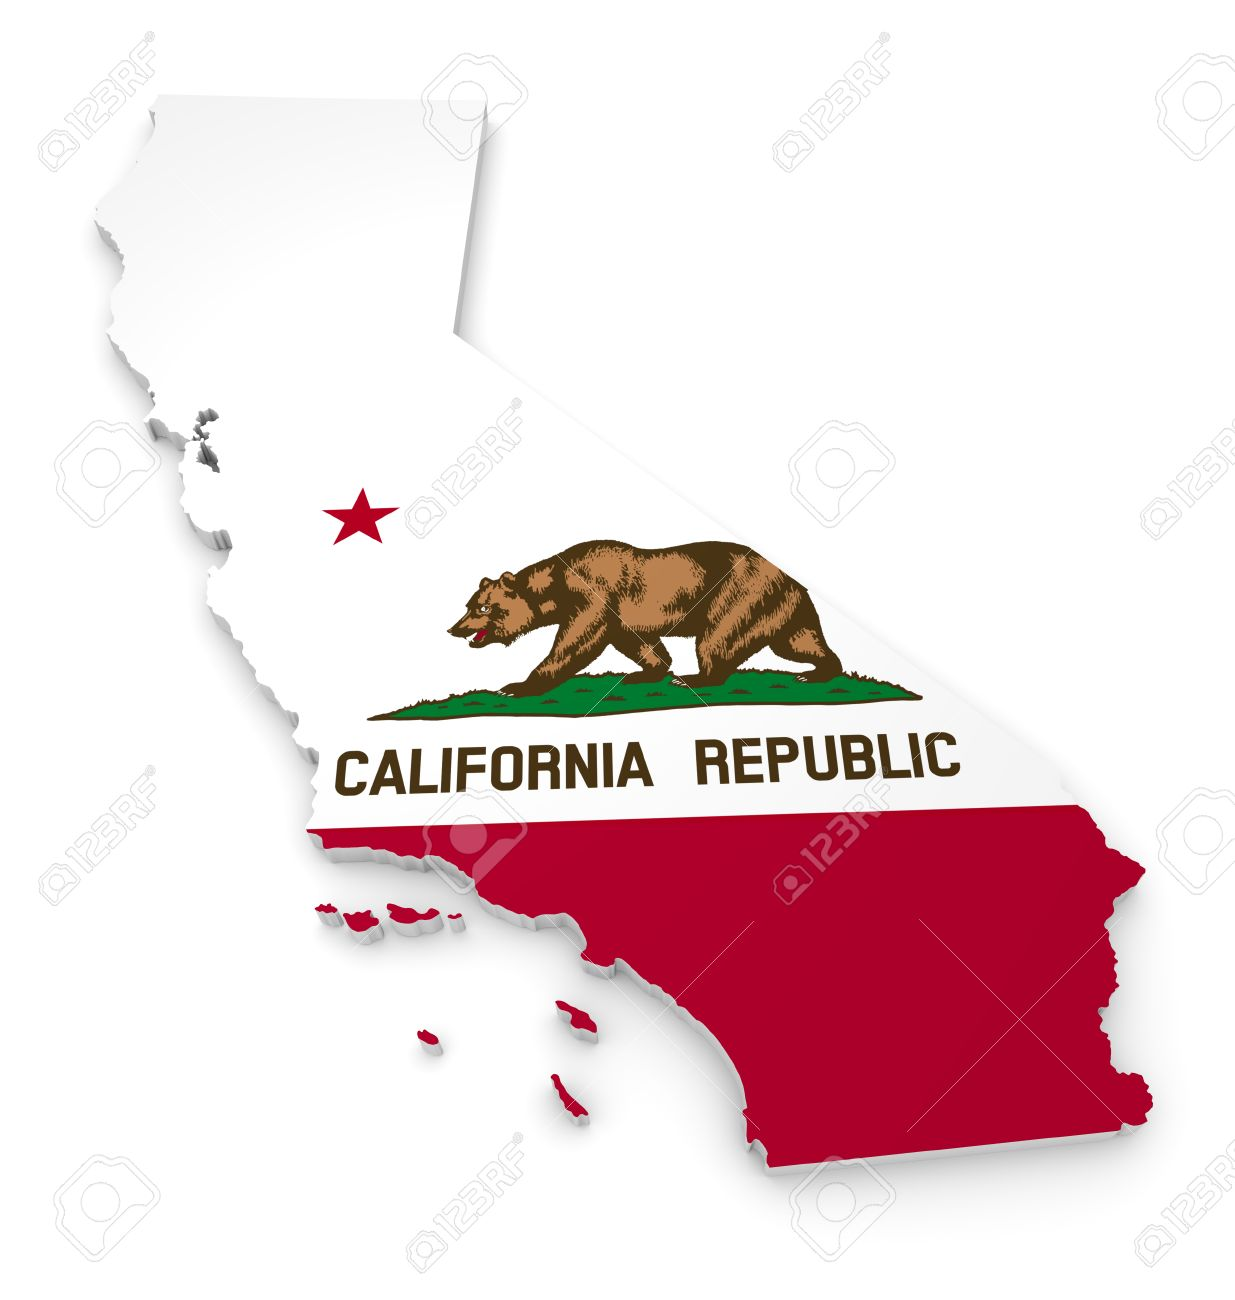 3D Geographic Outline Map Of California With The State Flag Stock Photo